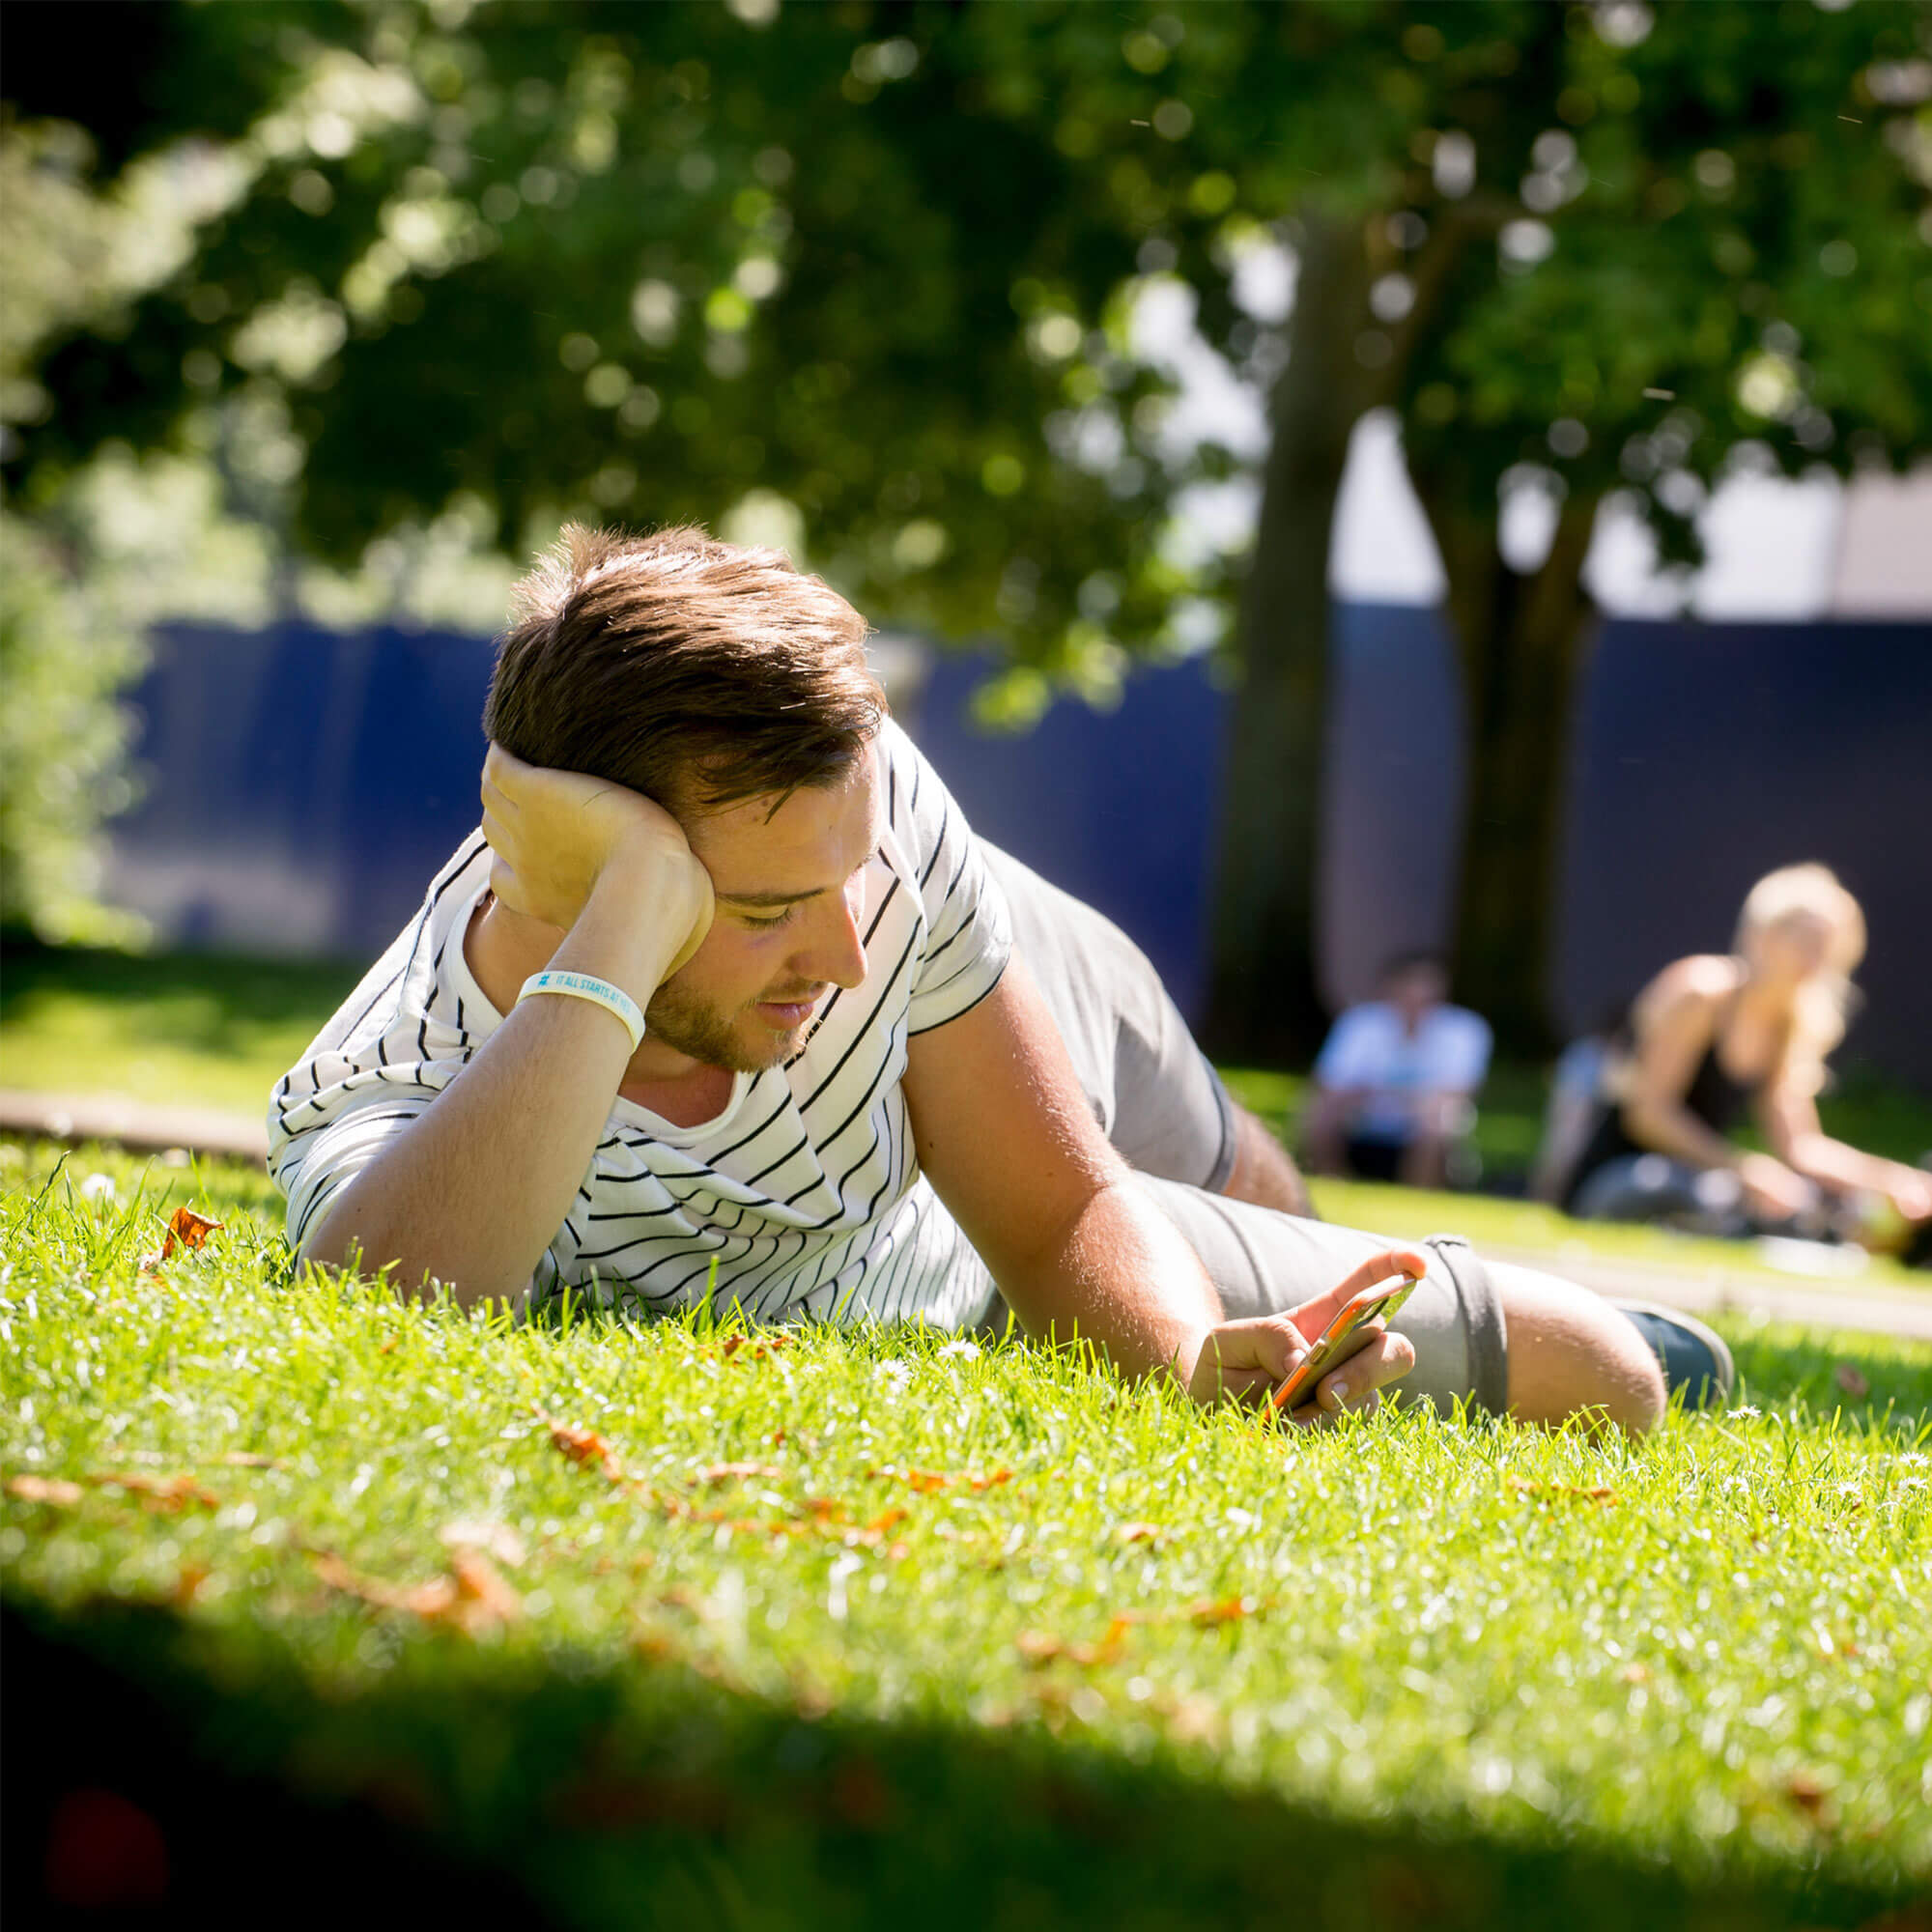 A student relaxes on grass